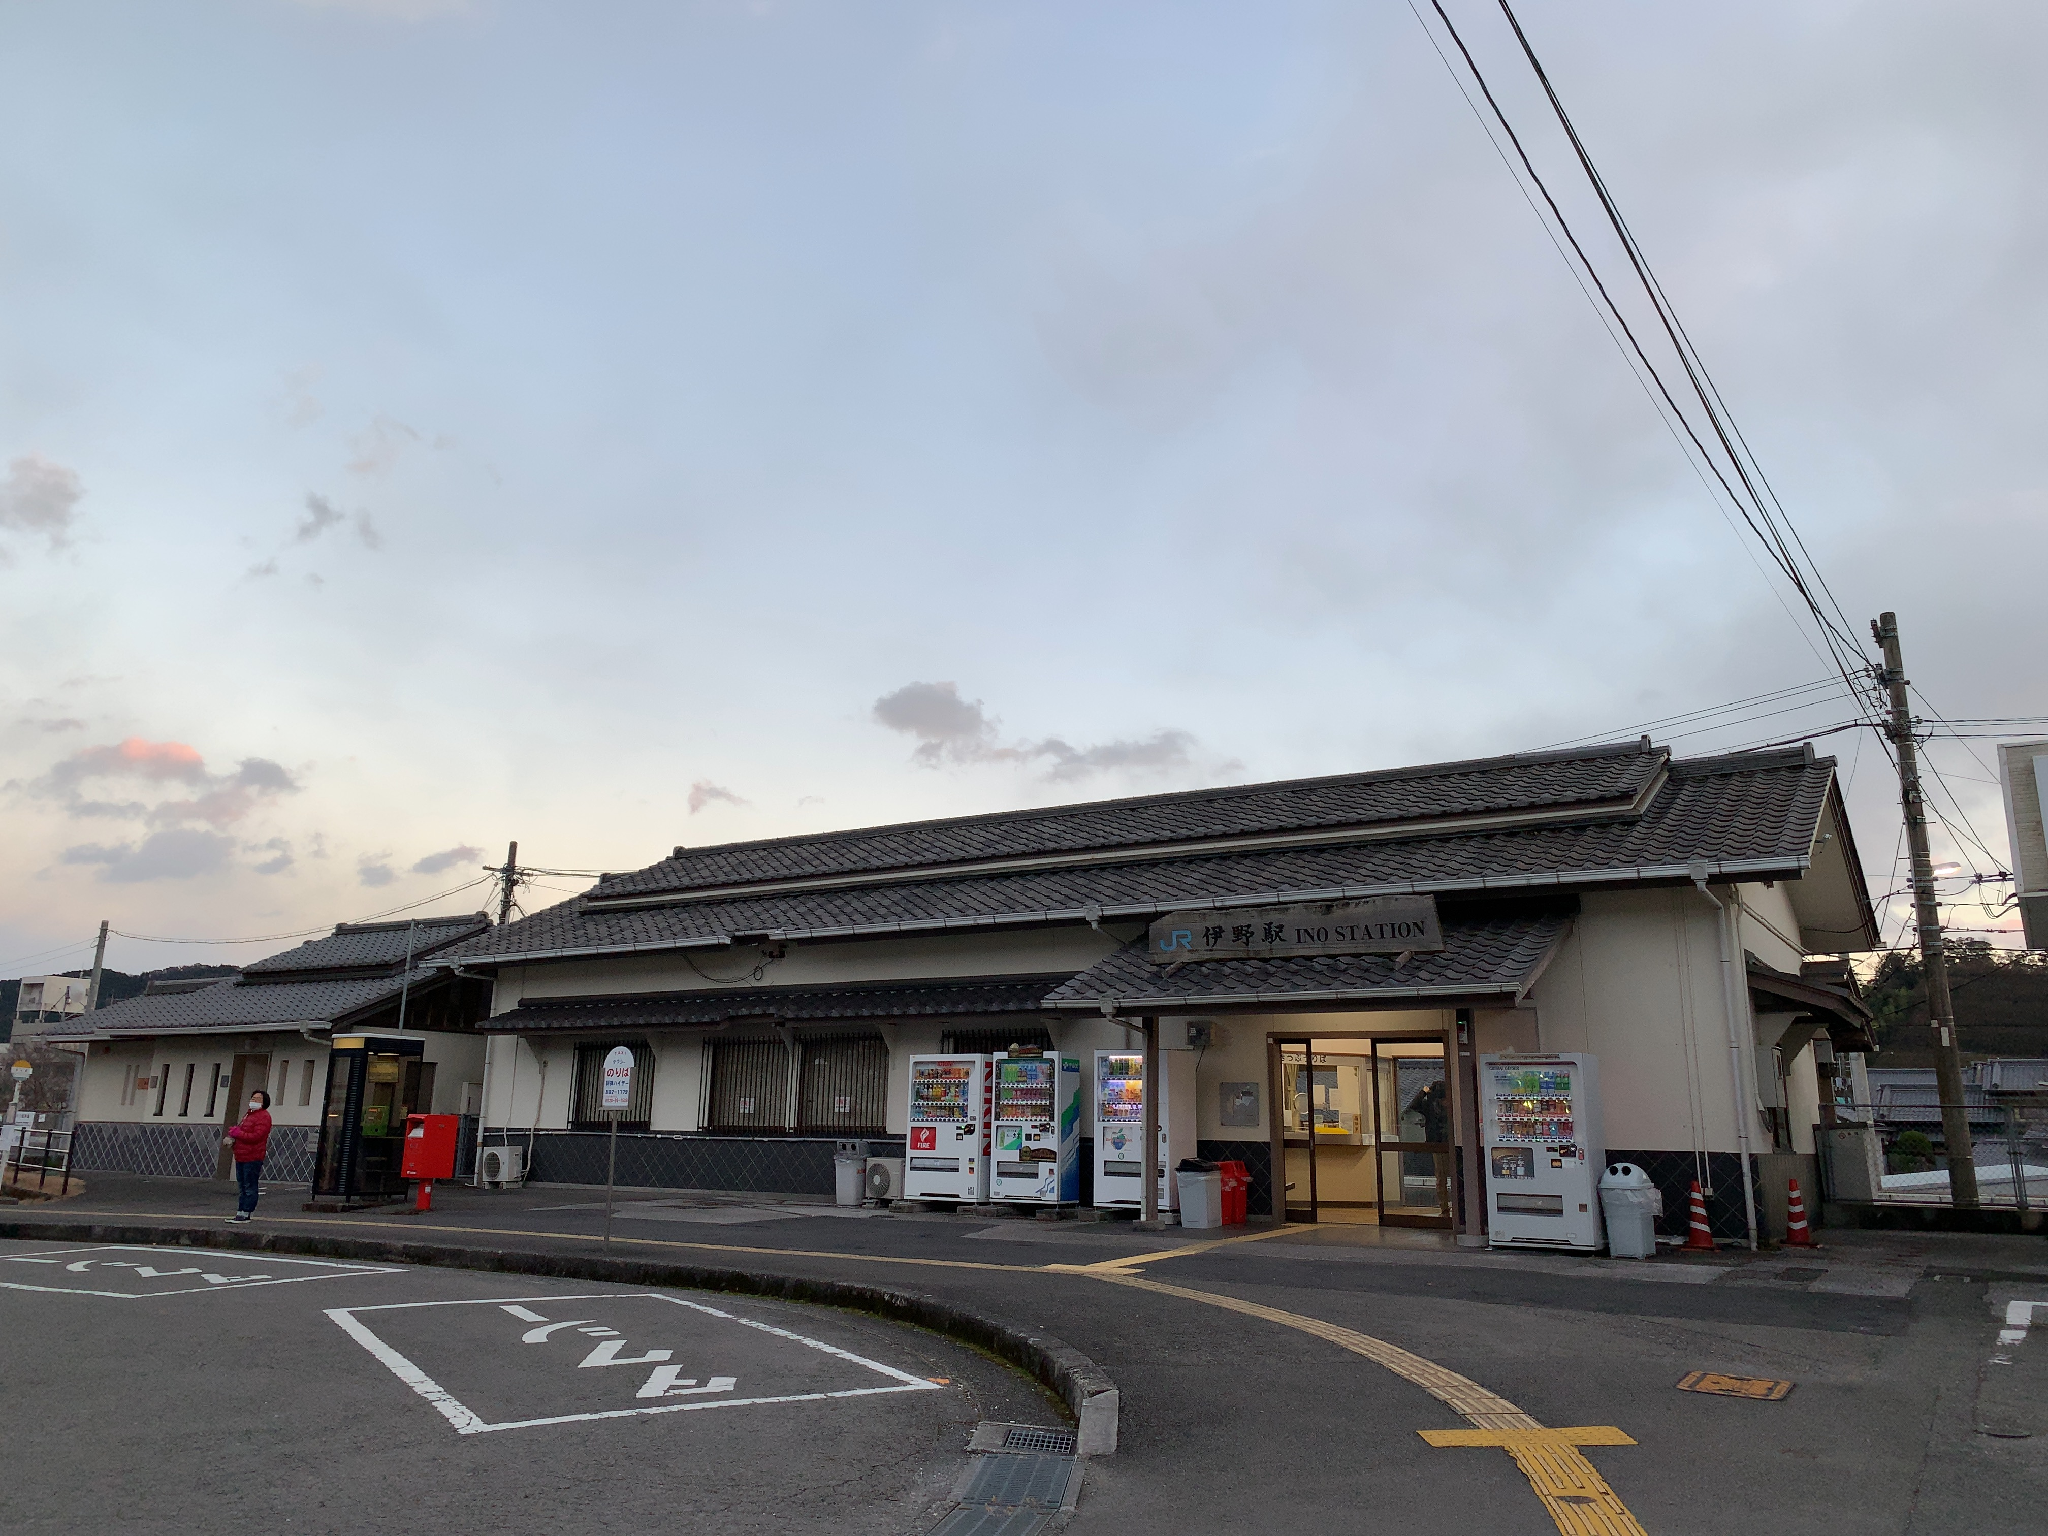 https://upload.wikimedia.org/wikipedia/commons/a/a3/Ino_Station.png